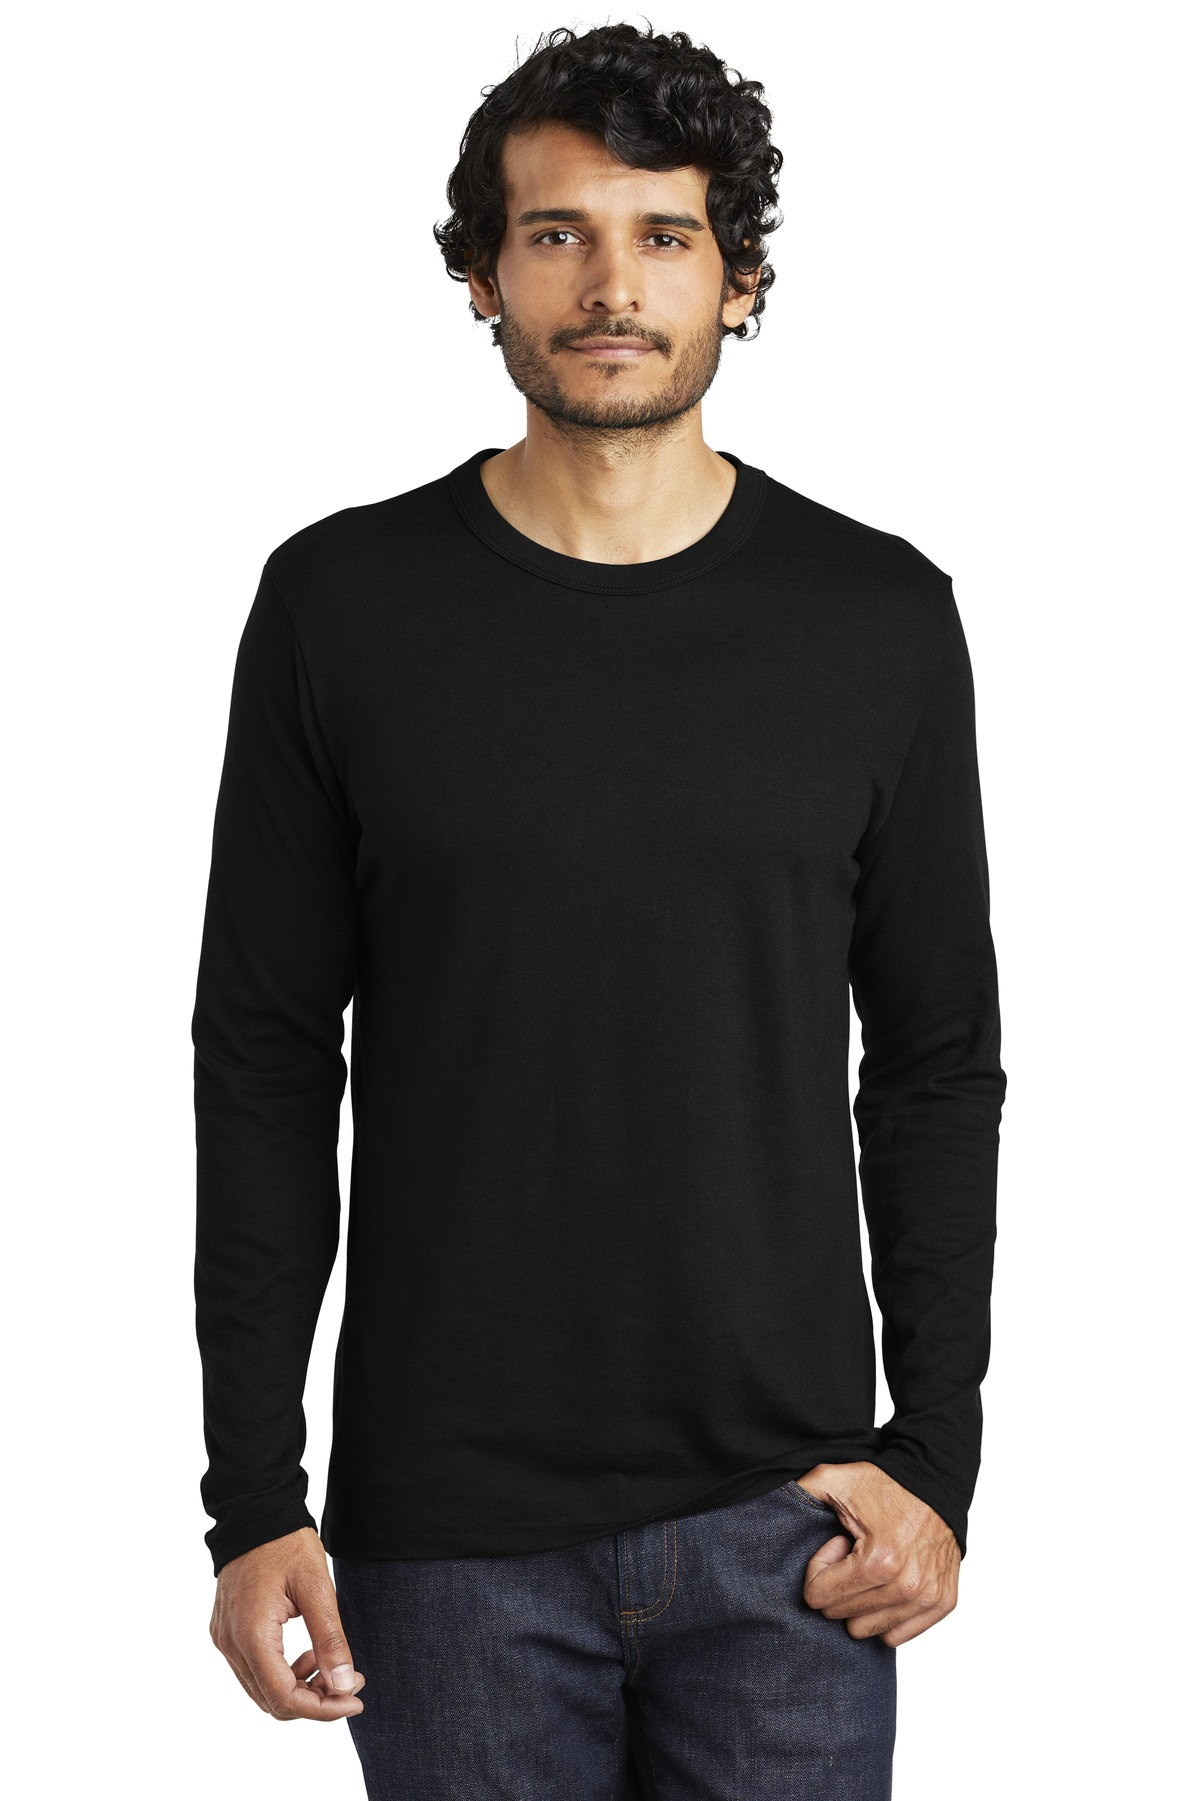 Alternative The Keeper Vintage 50/50 Long Sleeve Tee. AA5100 - Black